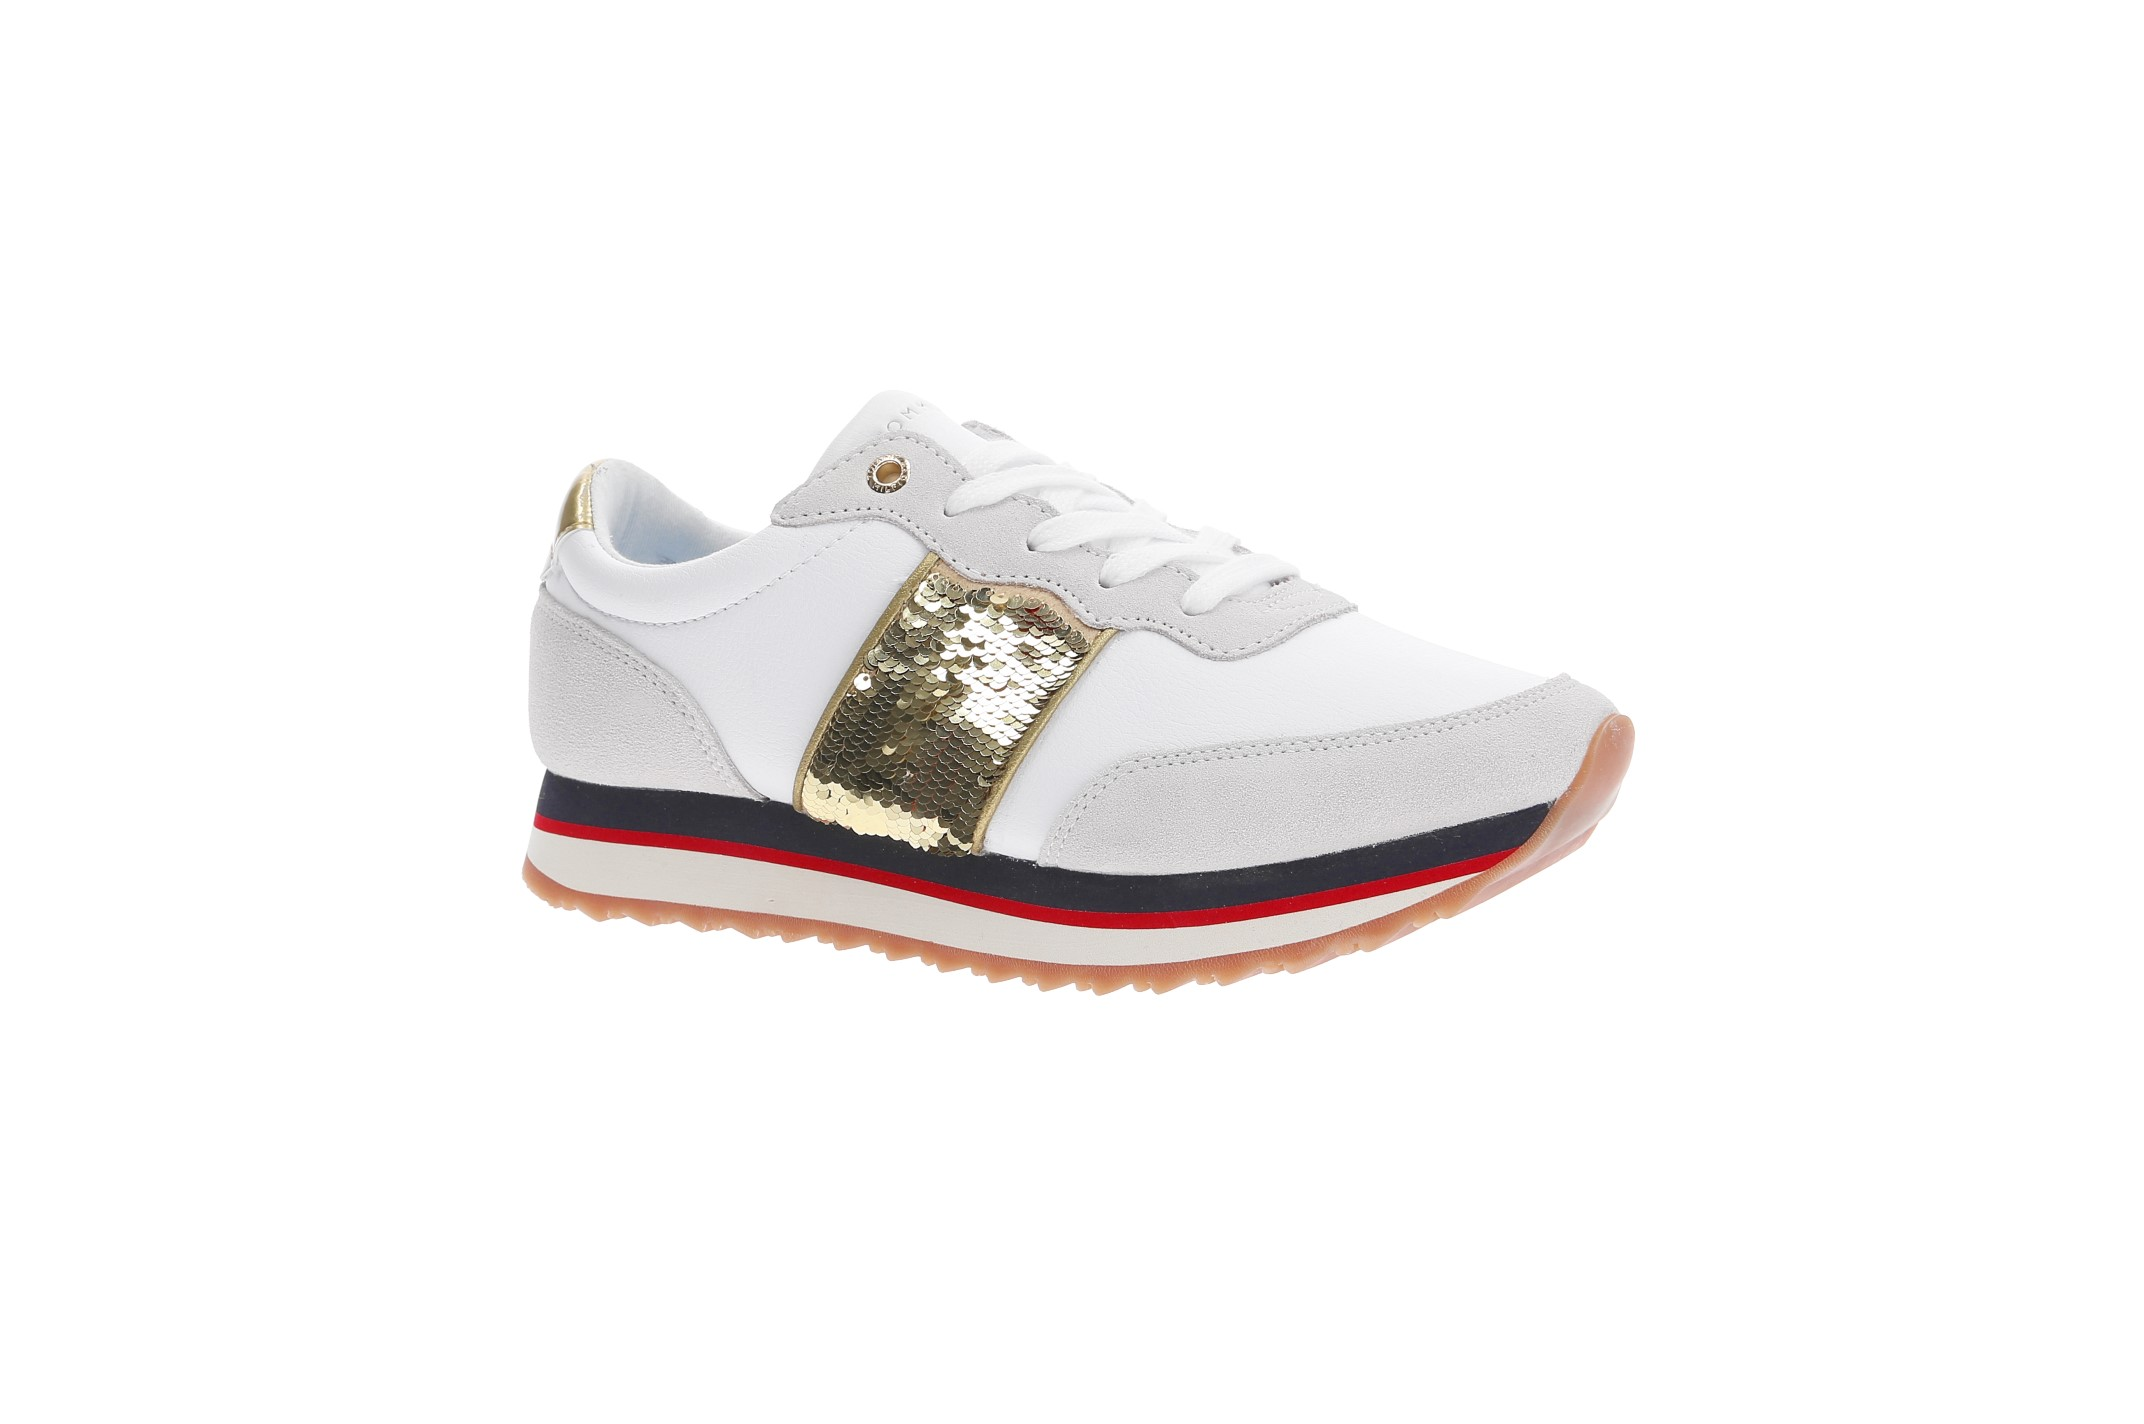 107aee88b88c3 Sneakers Tommy Sequins retro